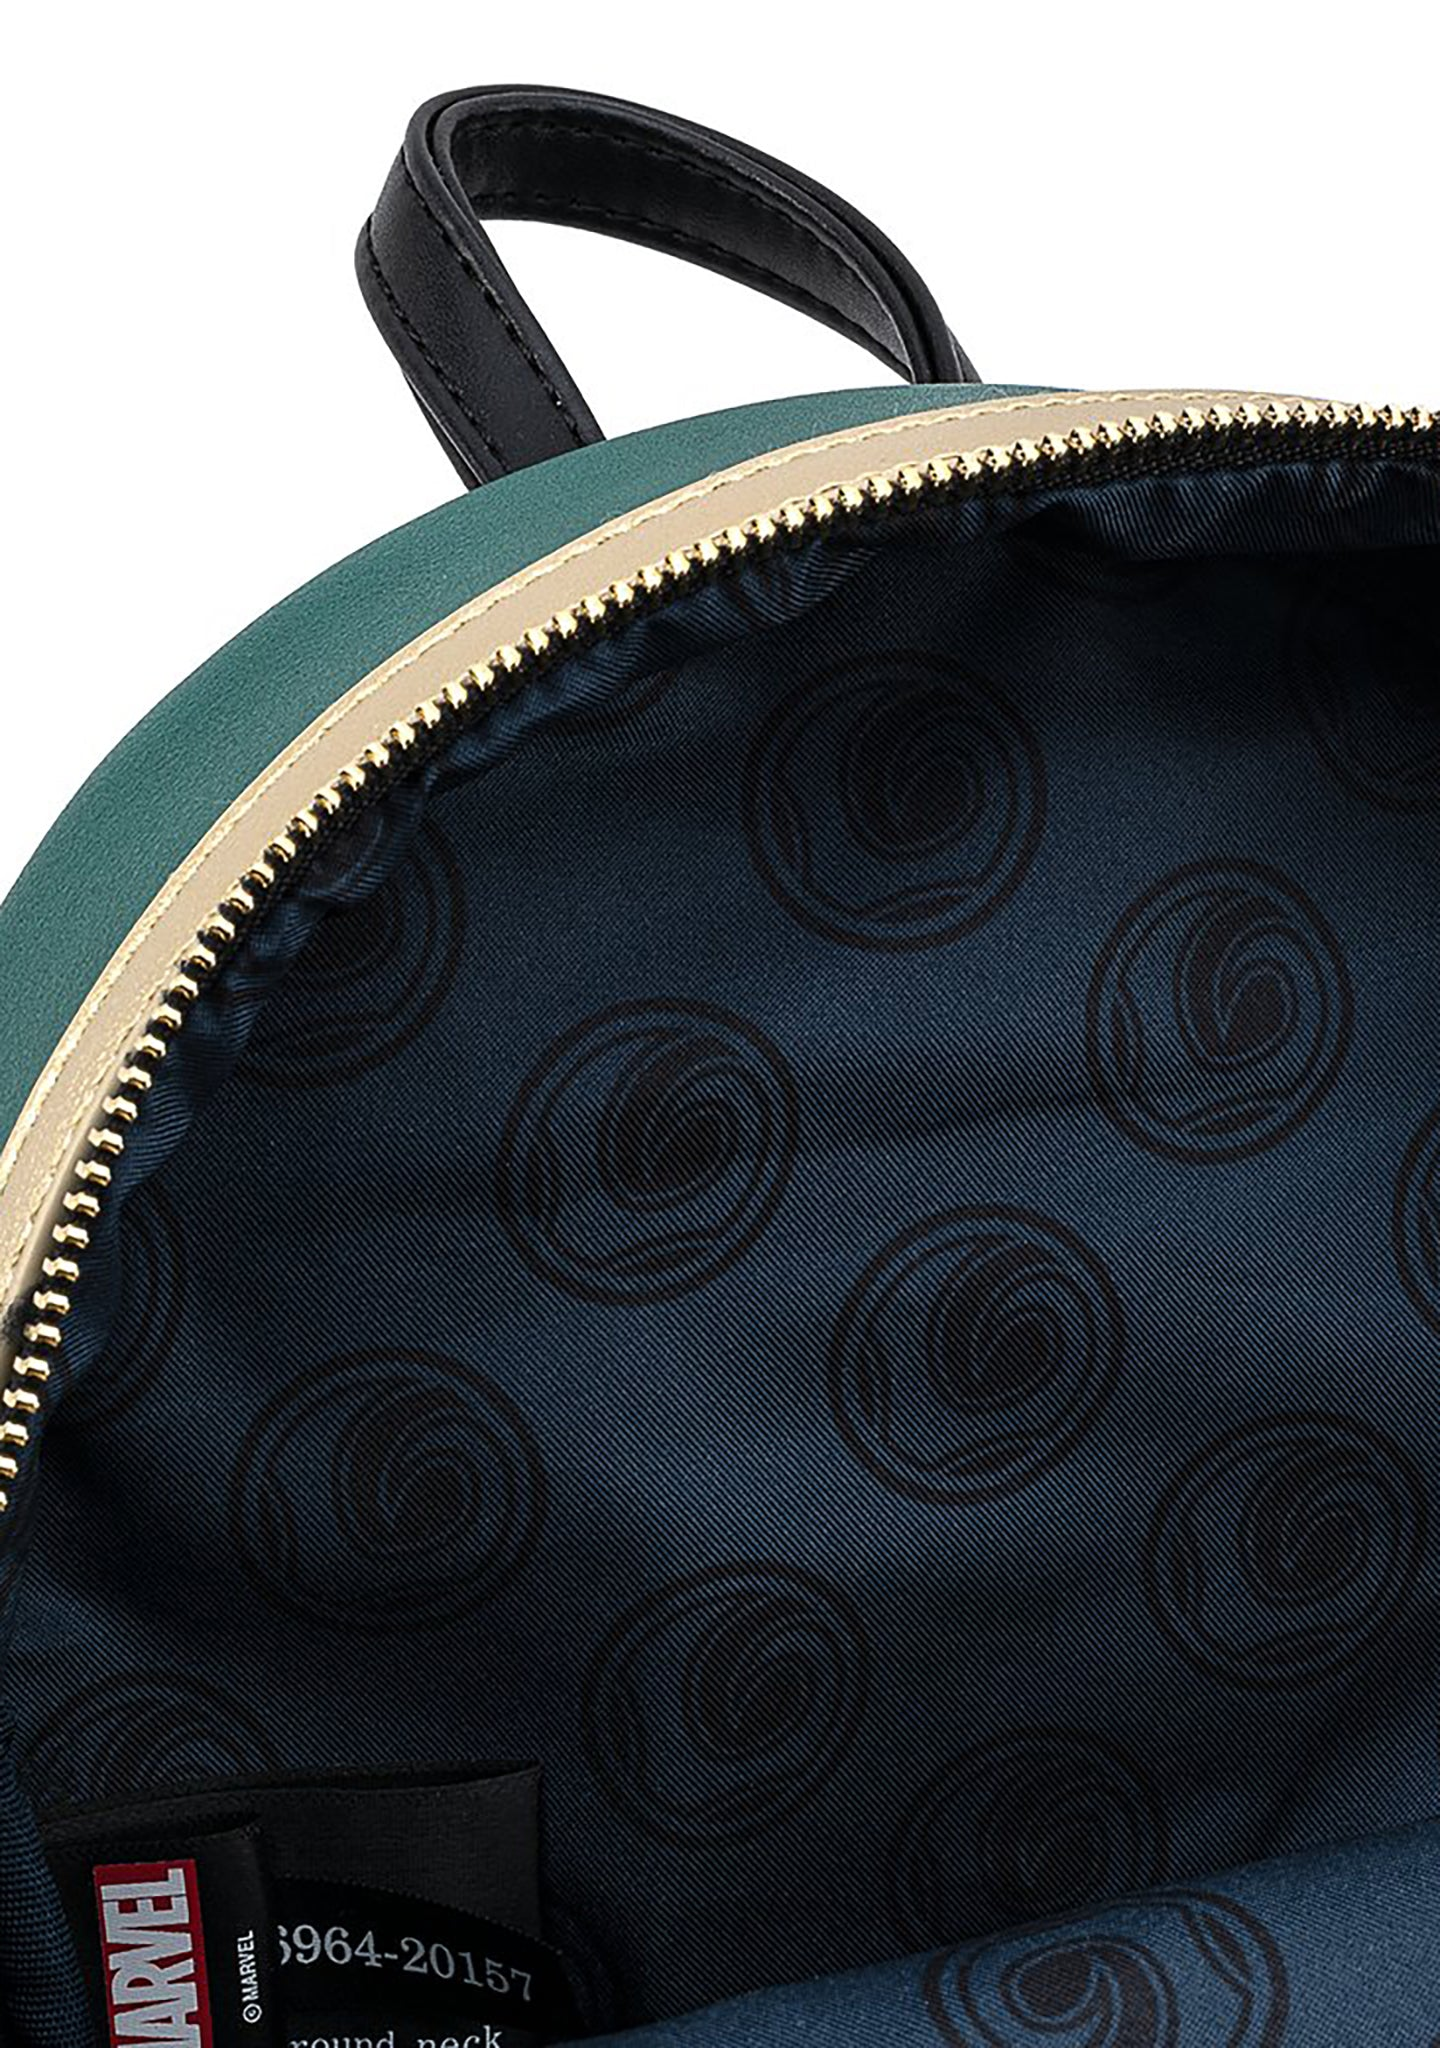 X Marvel Loki Classic Mini Backpack